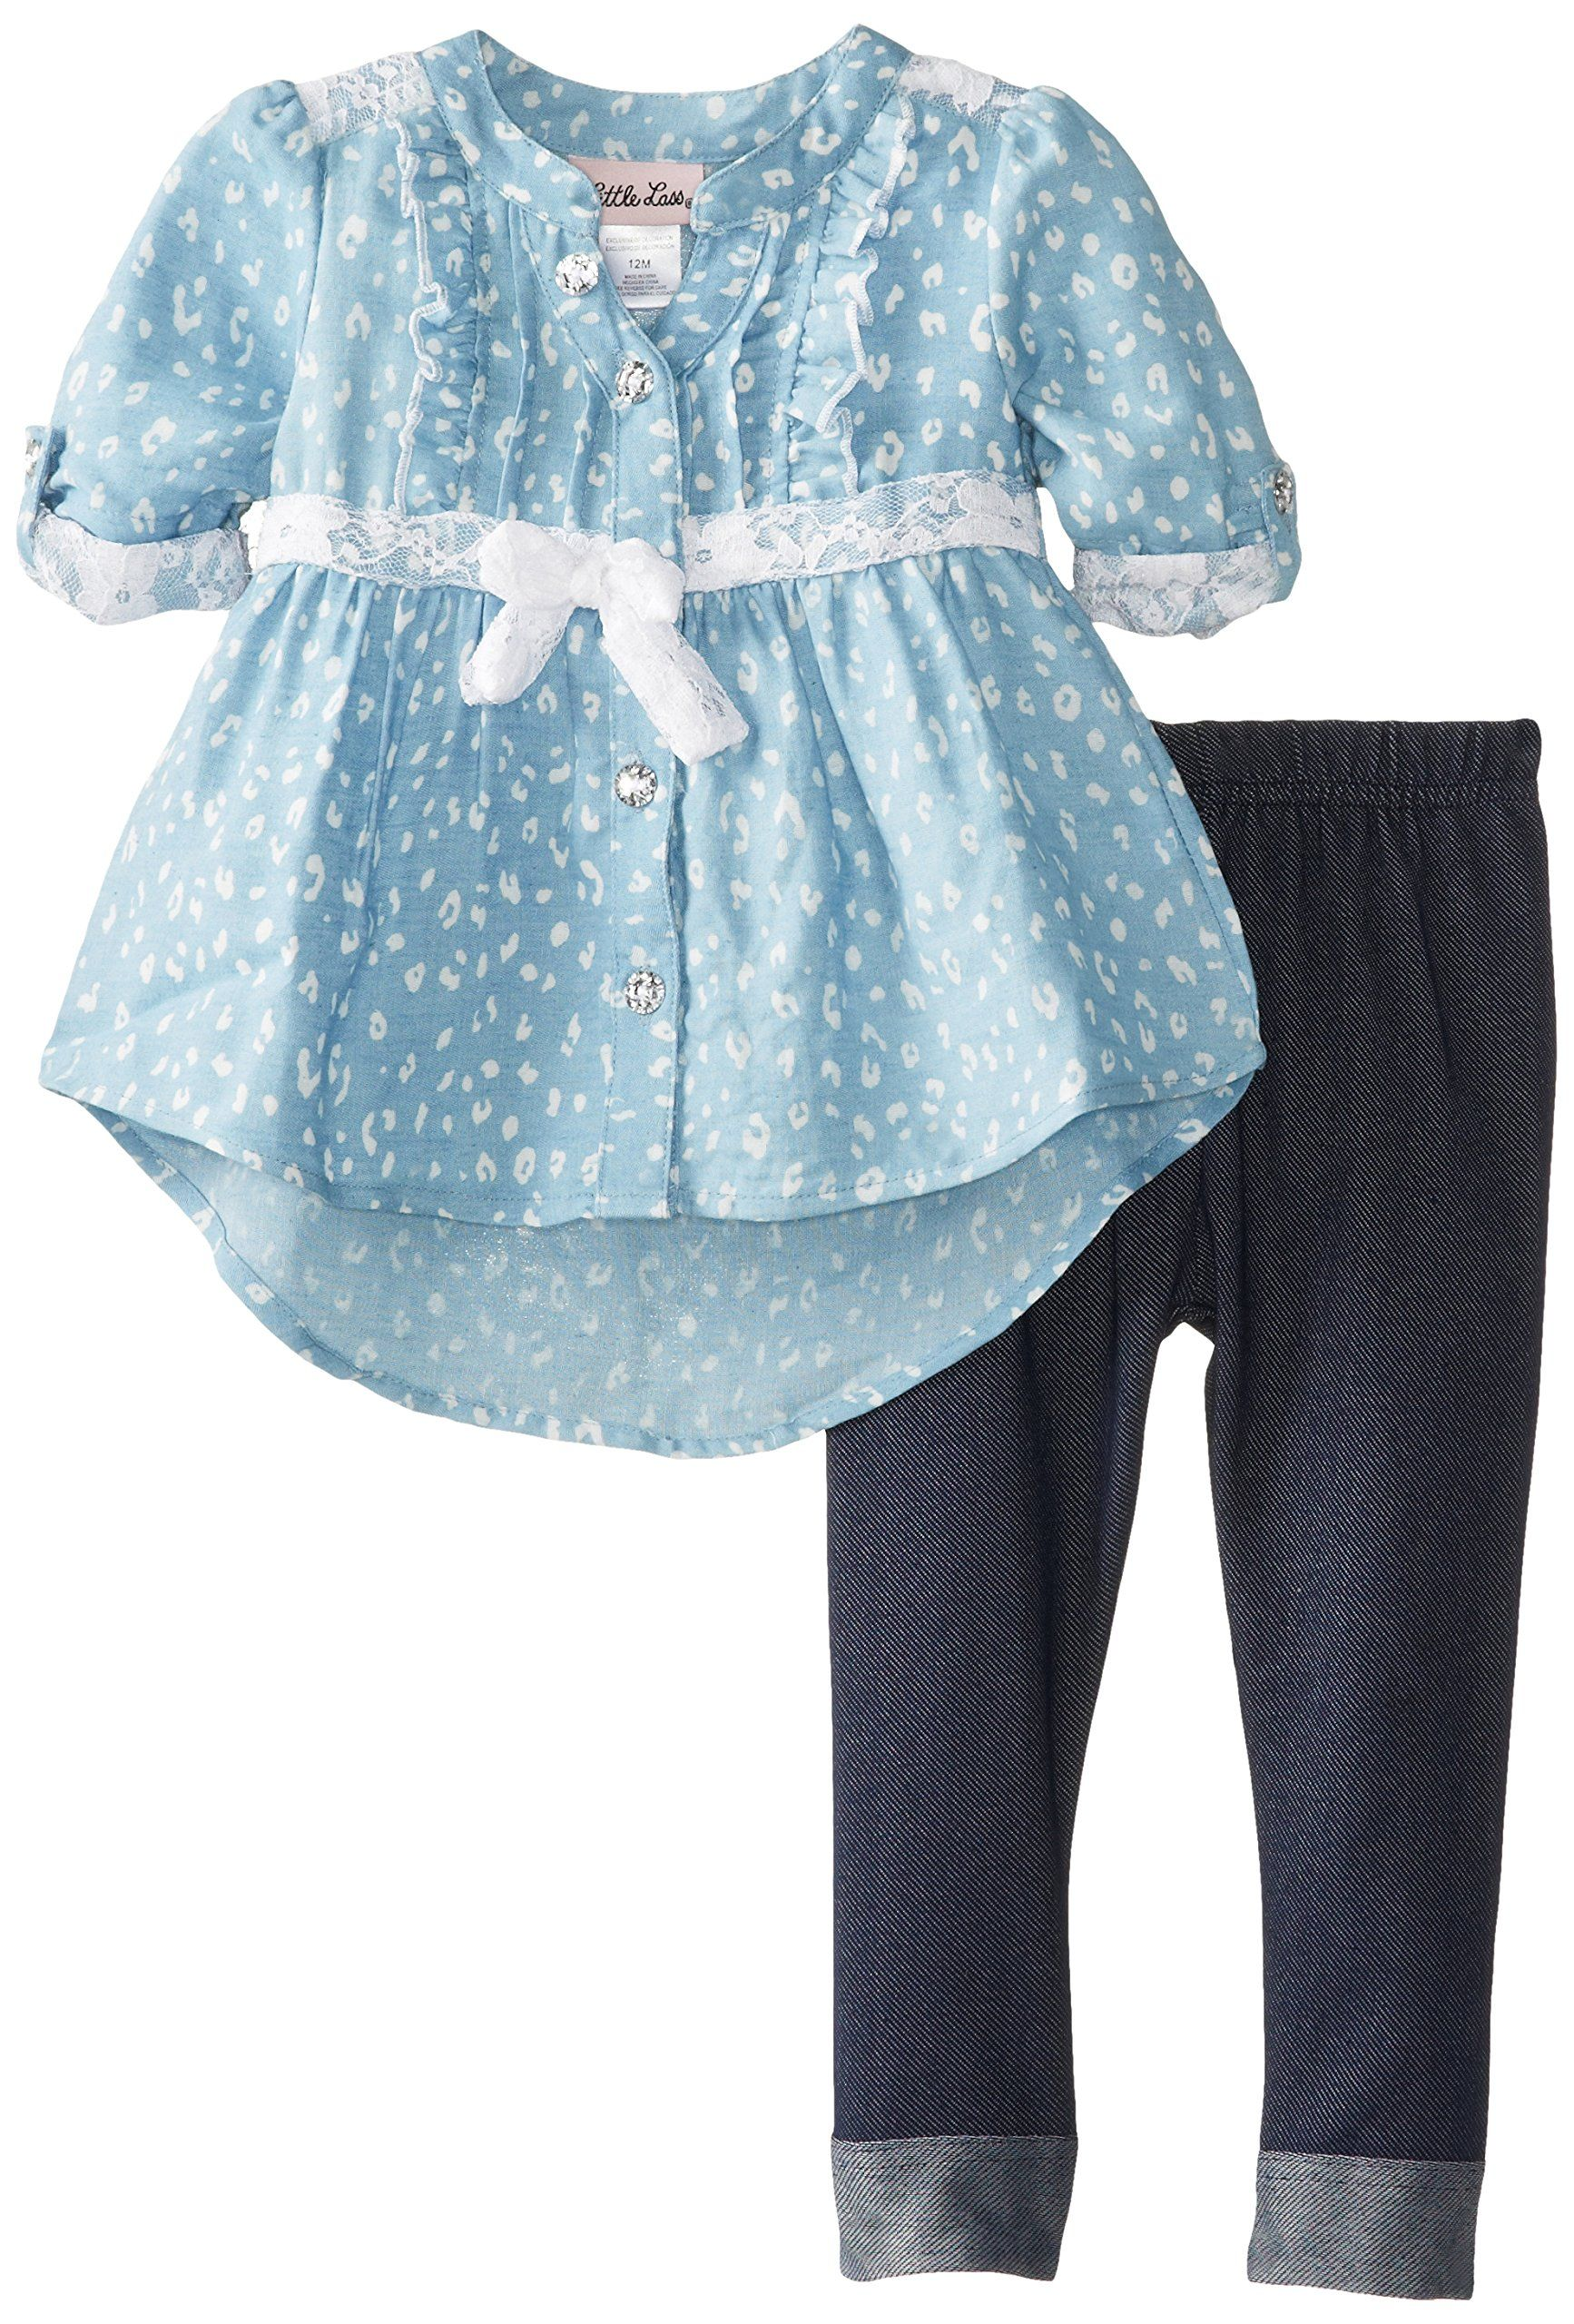 8ad4e215c Little Lass Baby Girls' 2 Piece Printed Chambray Legging Set, Chambray, 18  Months